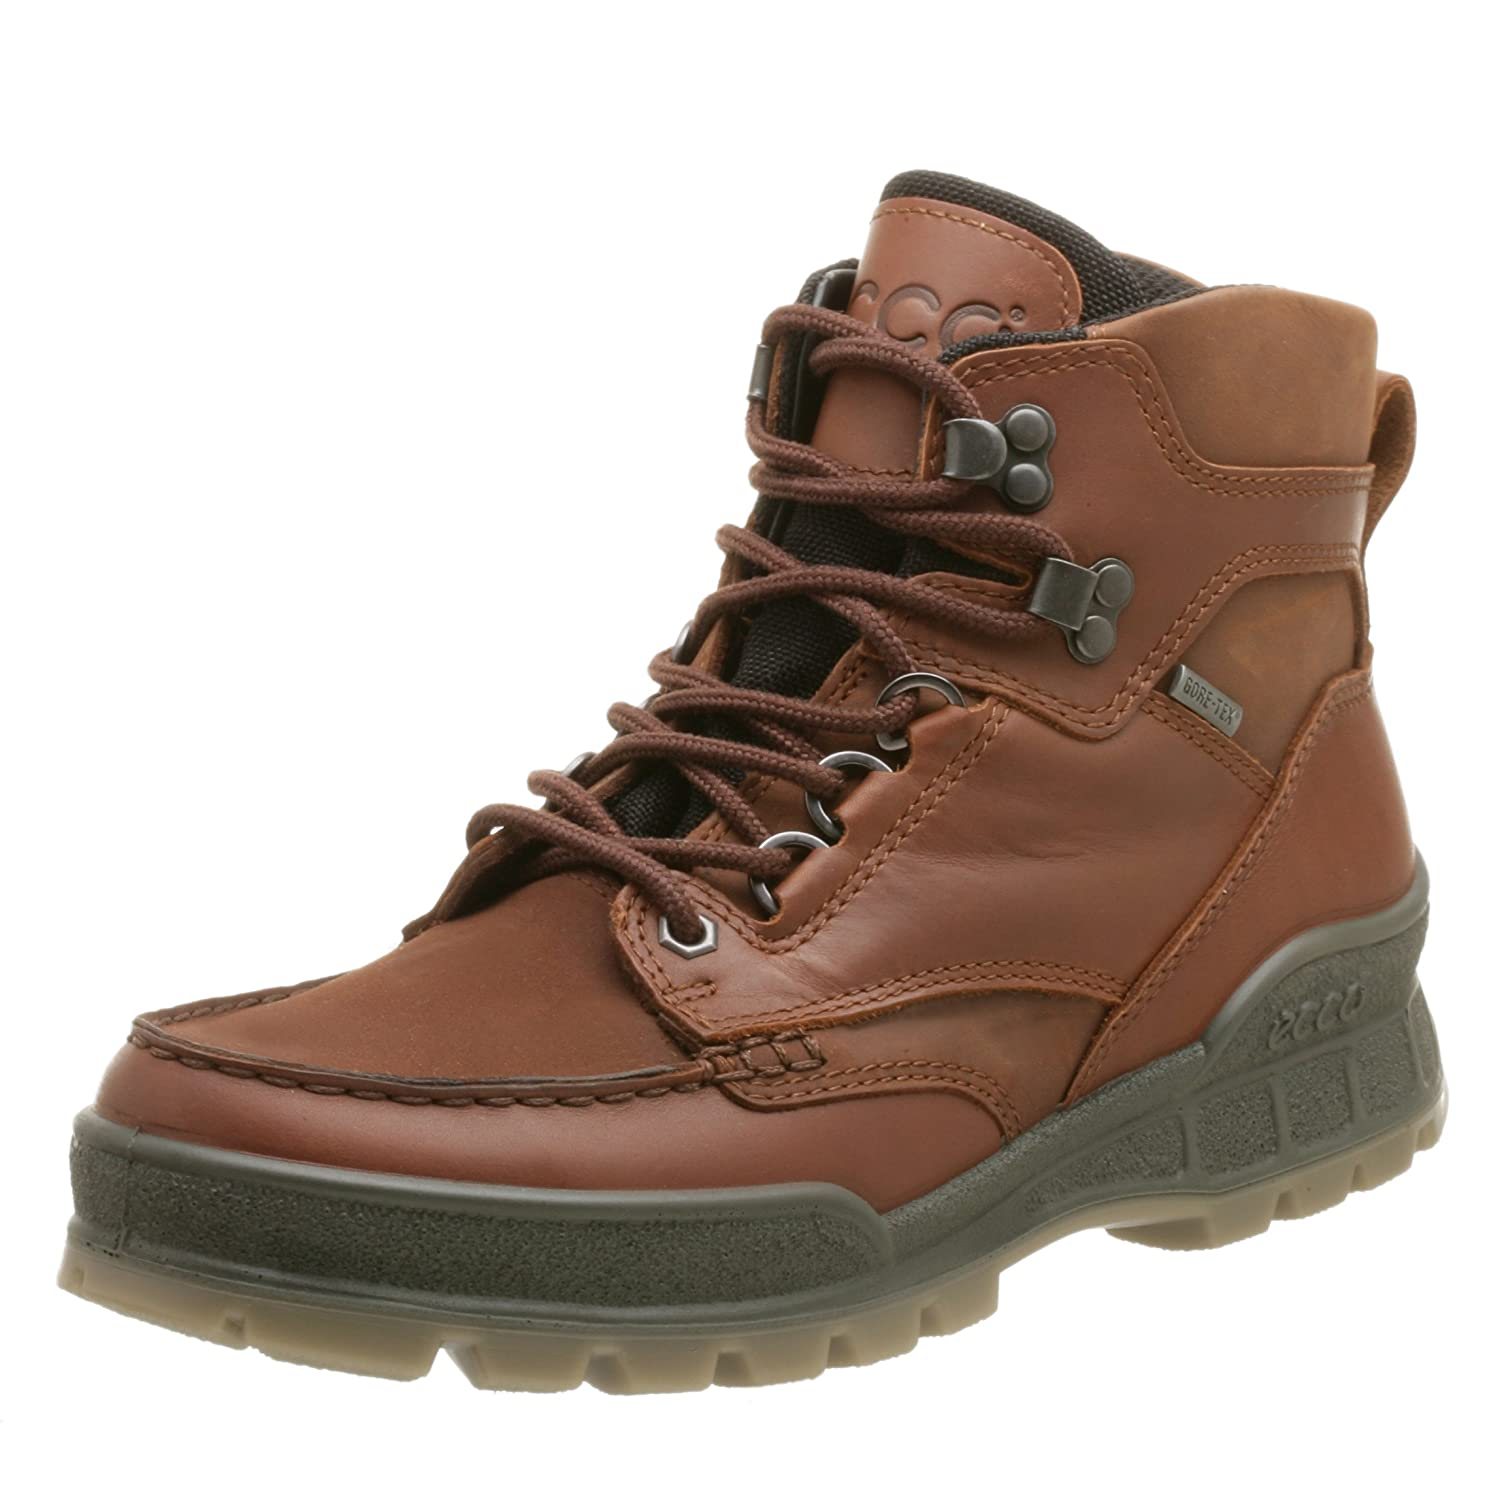 9ba2a9b7 Ecco Men's Track II High GORE-TEX waterproof outdoor hiking Boot